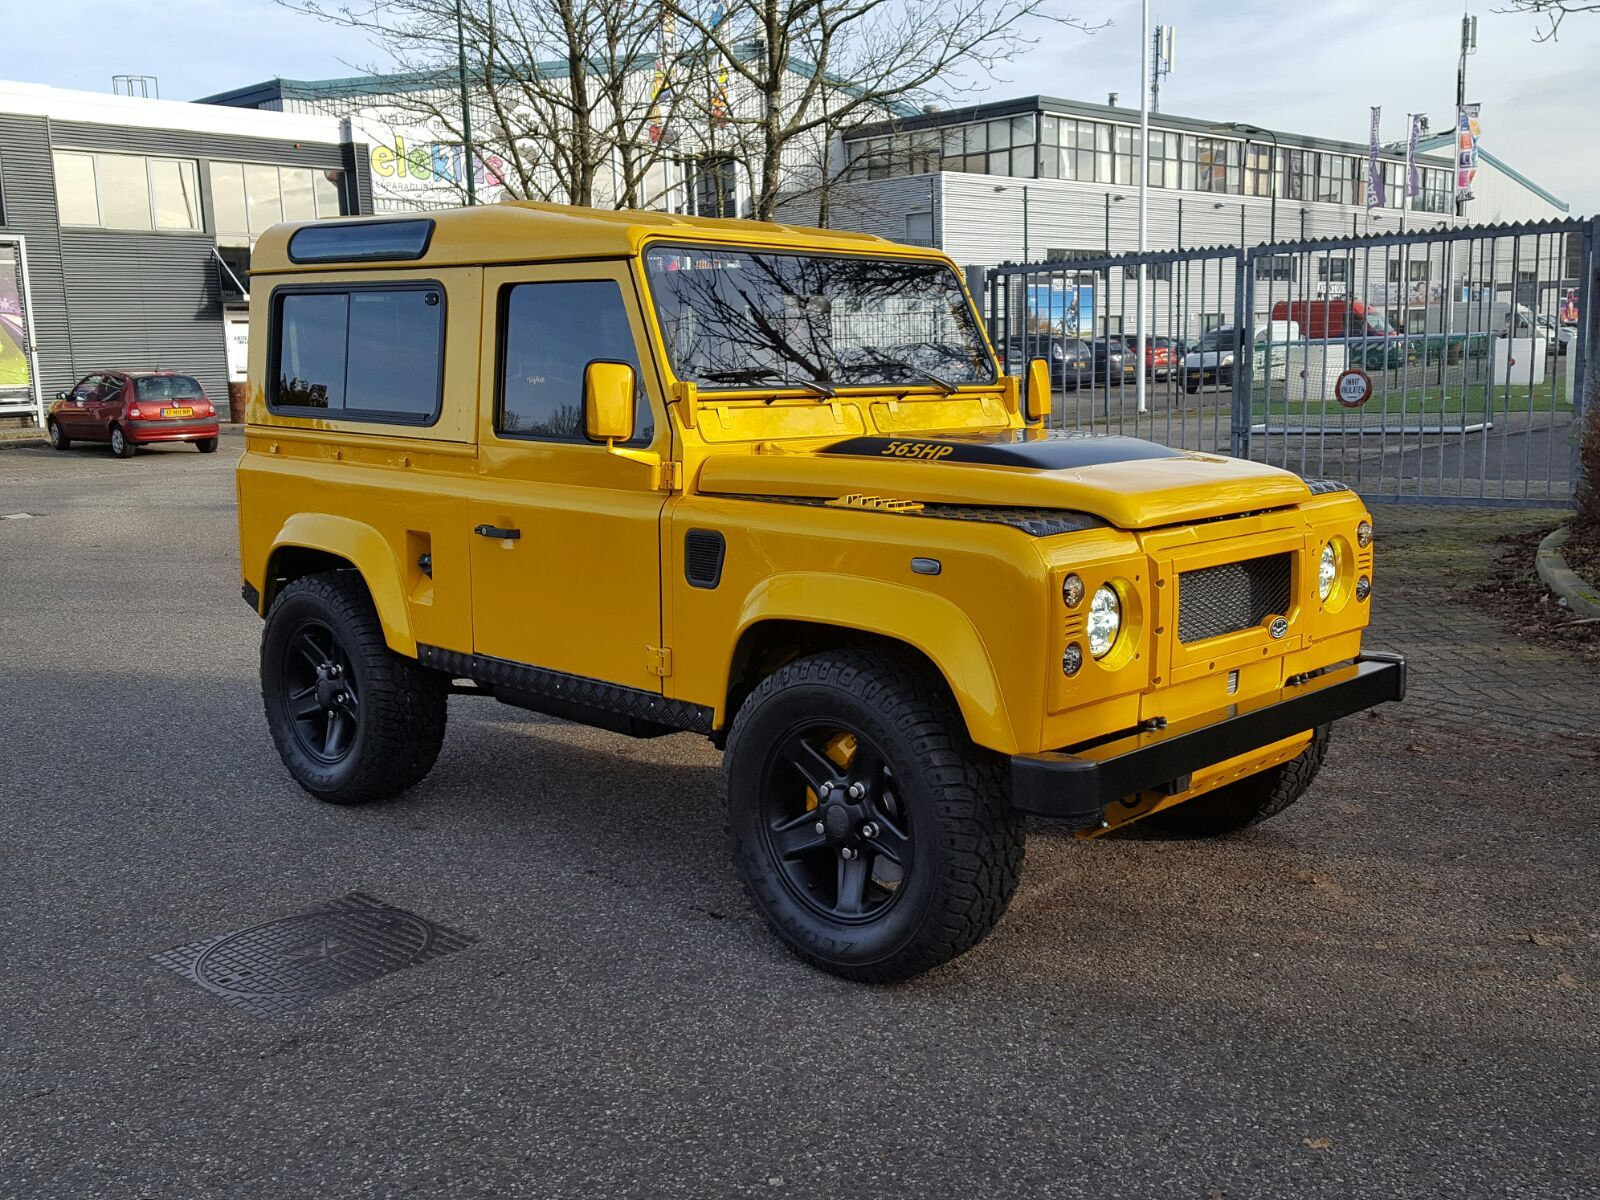 Land rovers 565hp tophat defender 90 ls3 with manual 6 speed t56 magnum upgraded lt230 transfer case